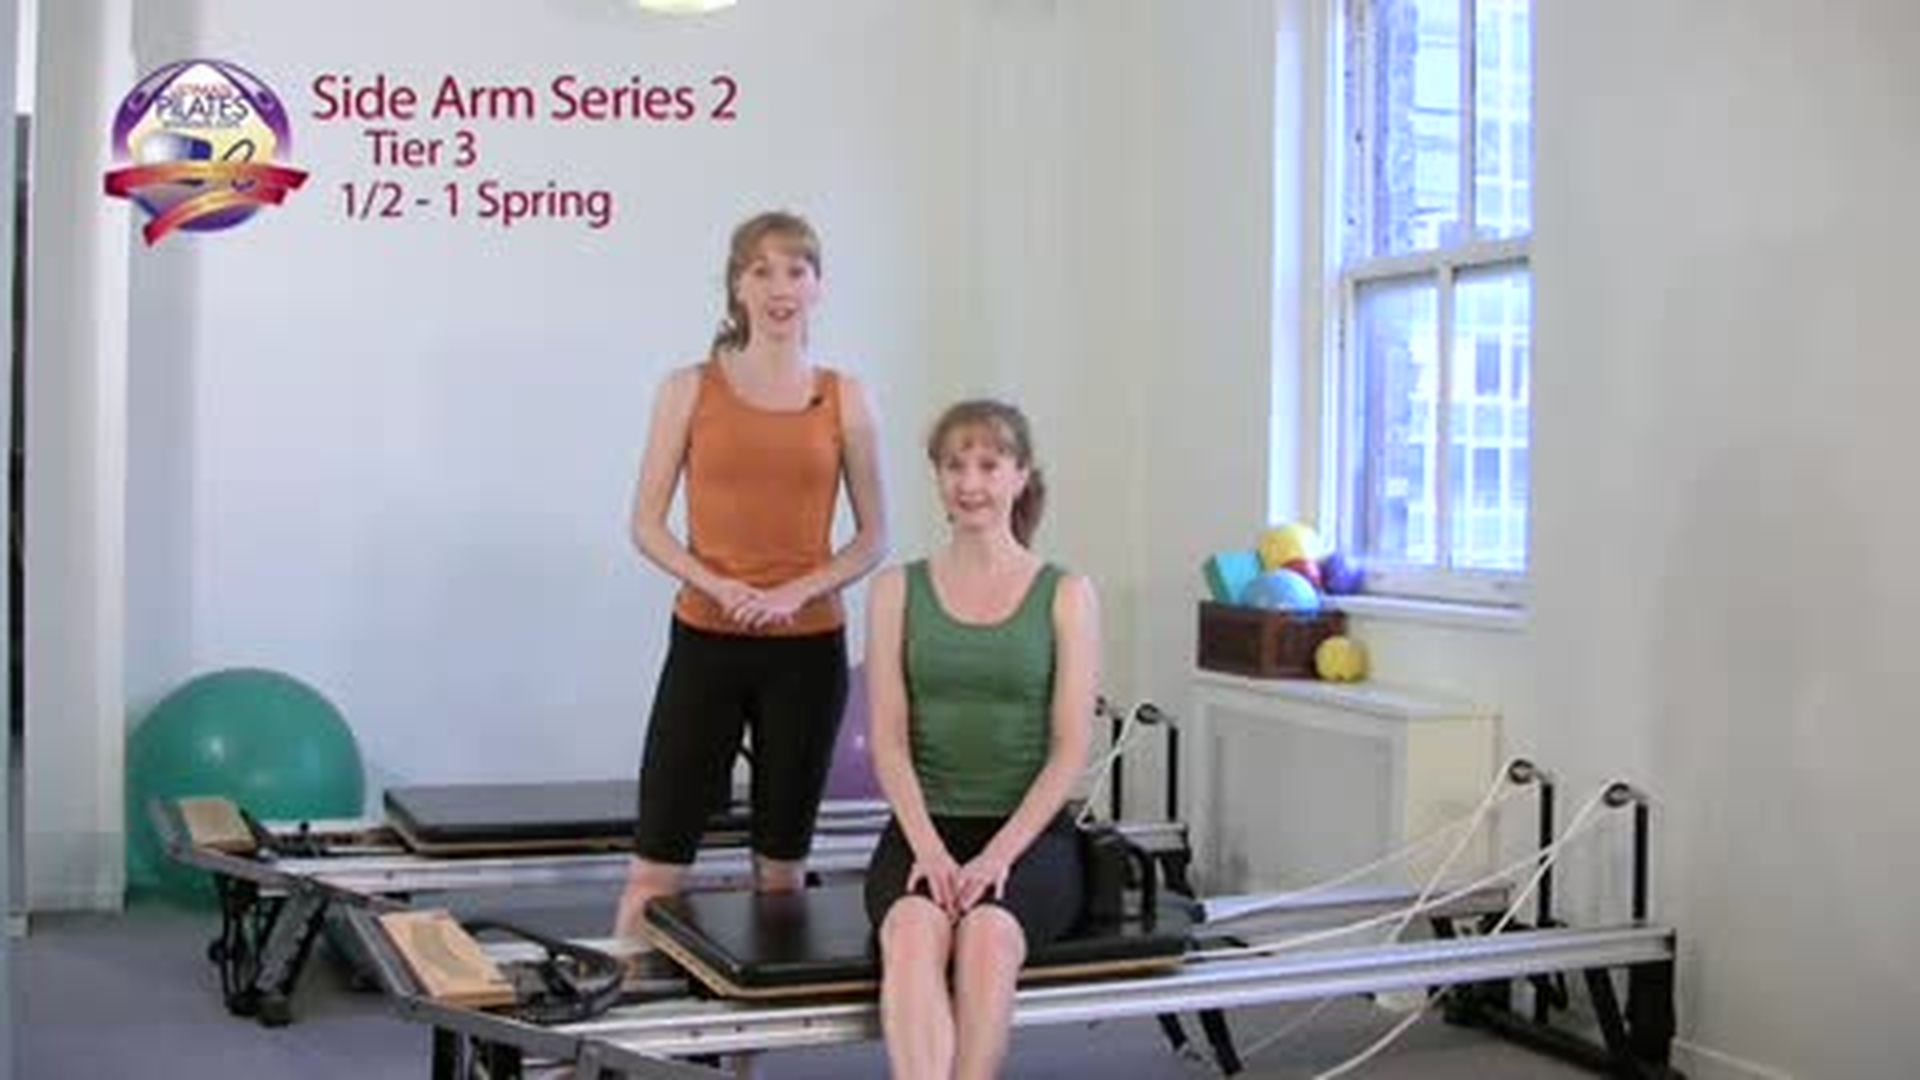 Side Arm Series 2